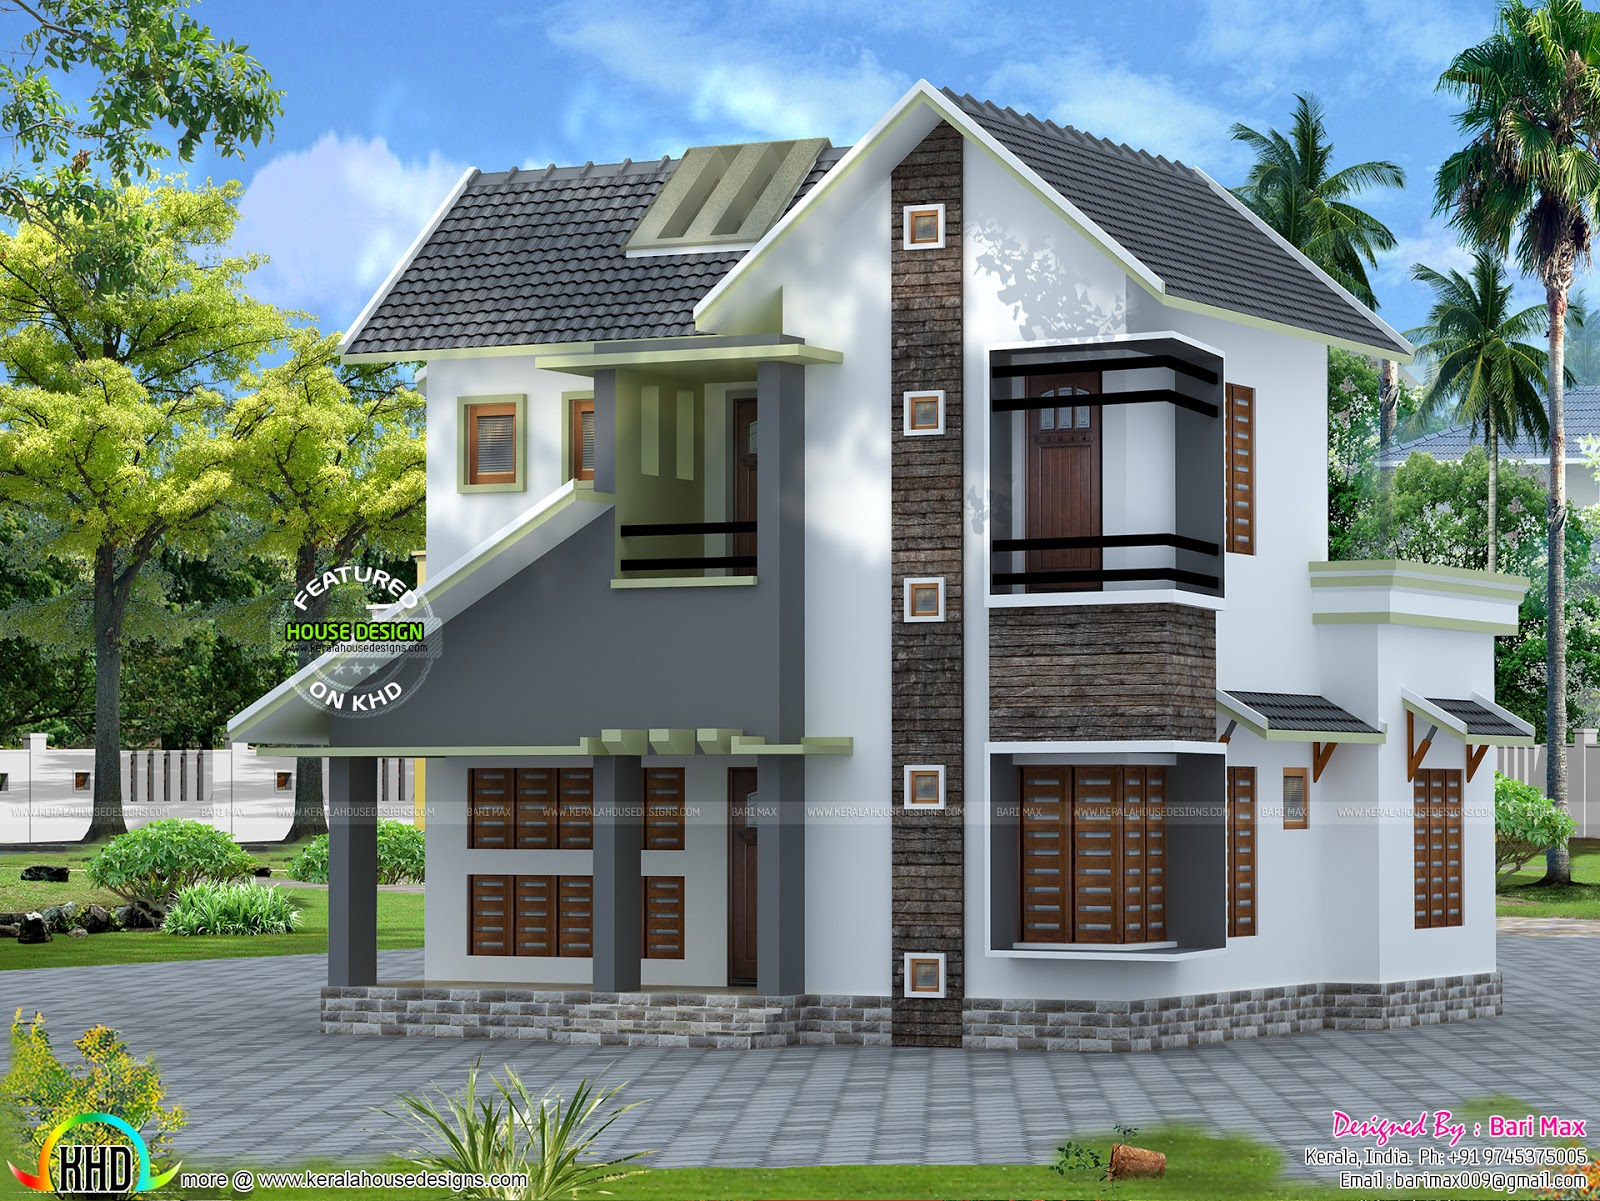 Slope roof low cost home design kerala home design and for Homes on a budget